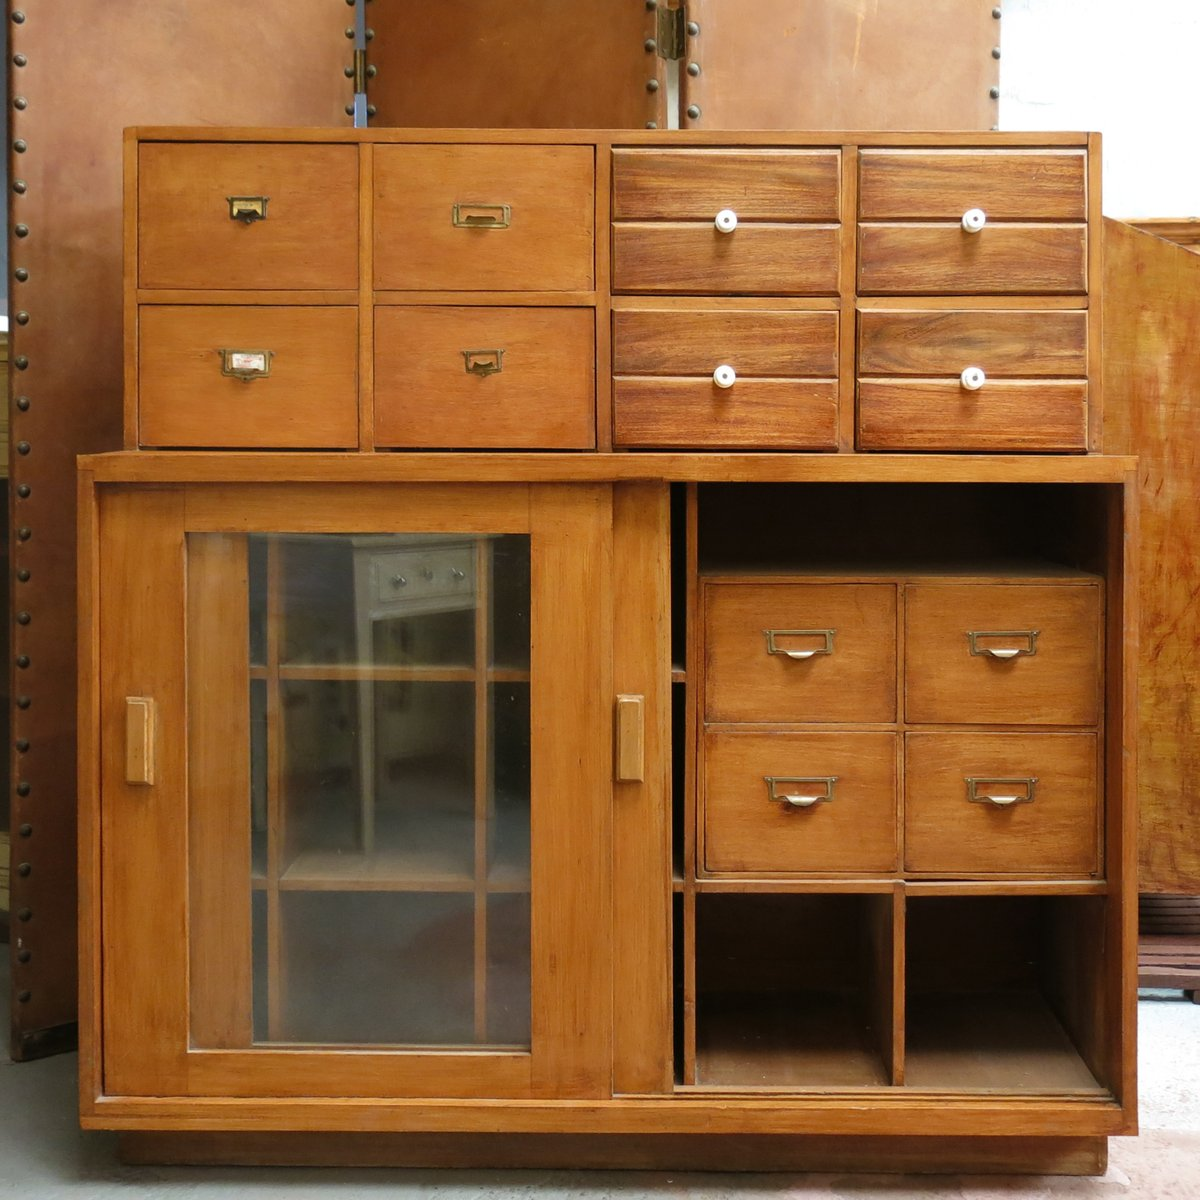 Damaged Kitchen Cabinets For Sale: Vintage Pharmacy Lab Cabinet, 1940s For Sale At Pamono